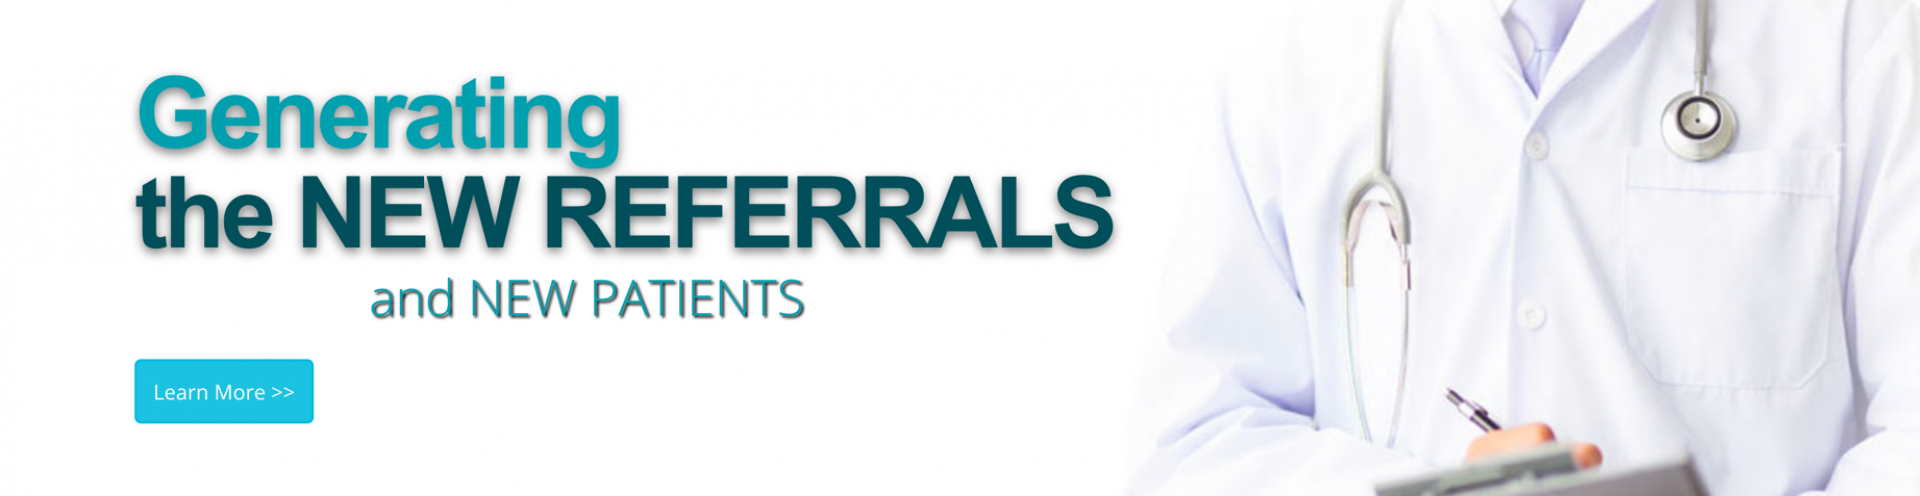 Text image: Generating the New Referrals and New Patients